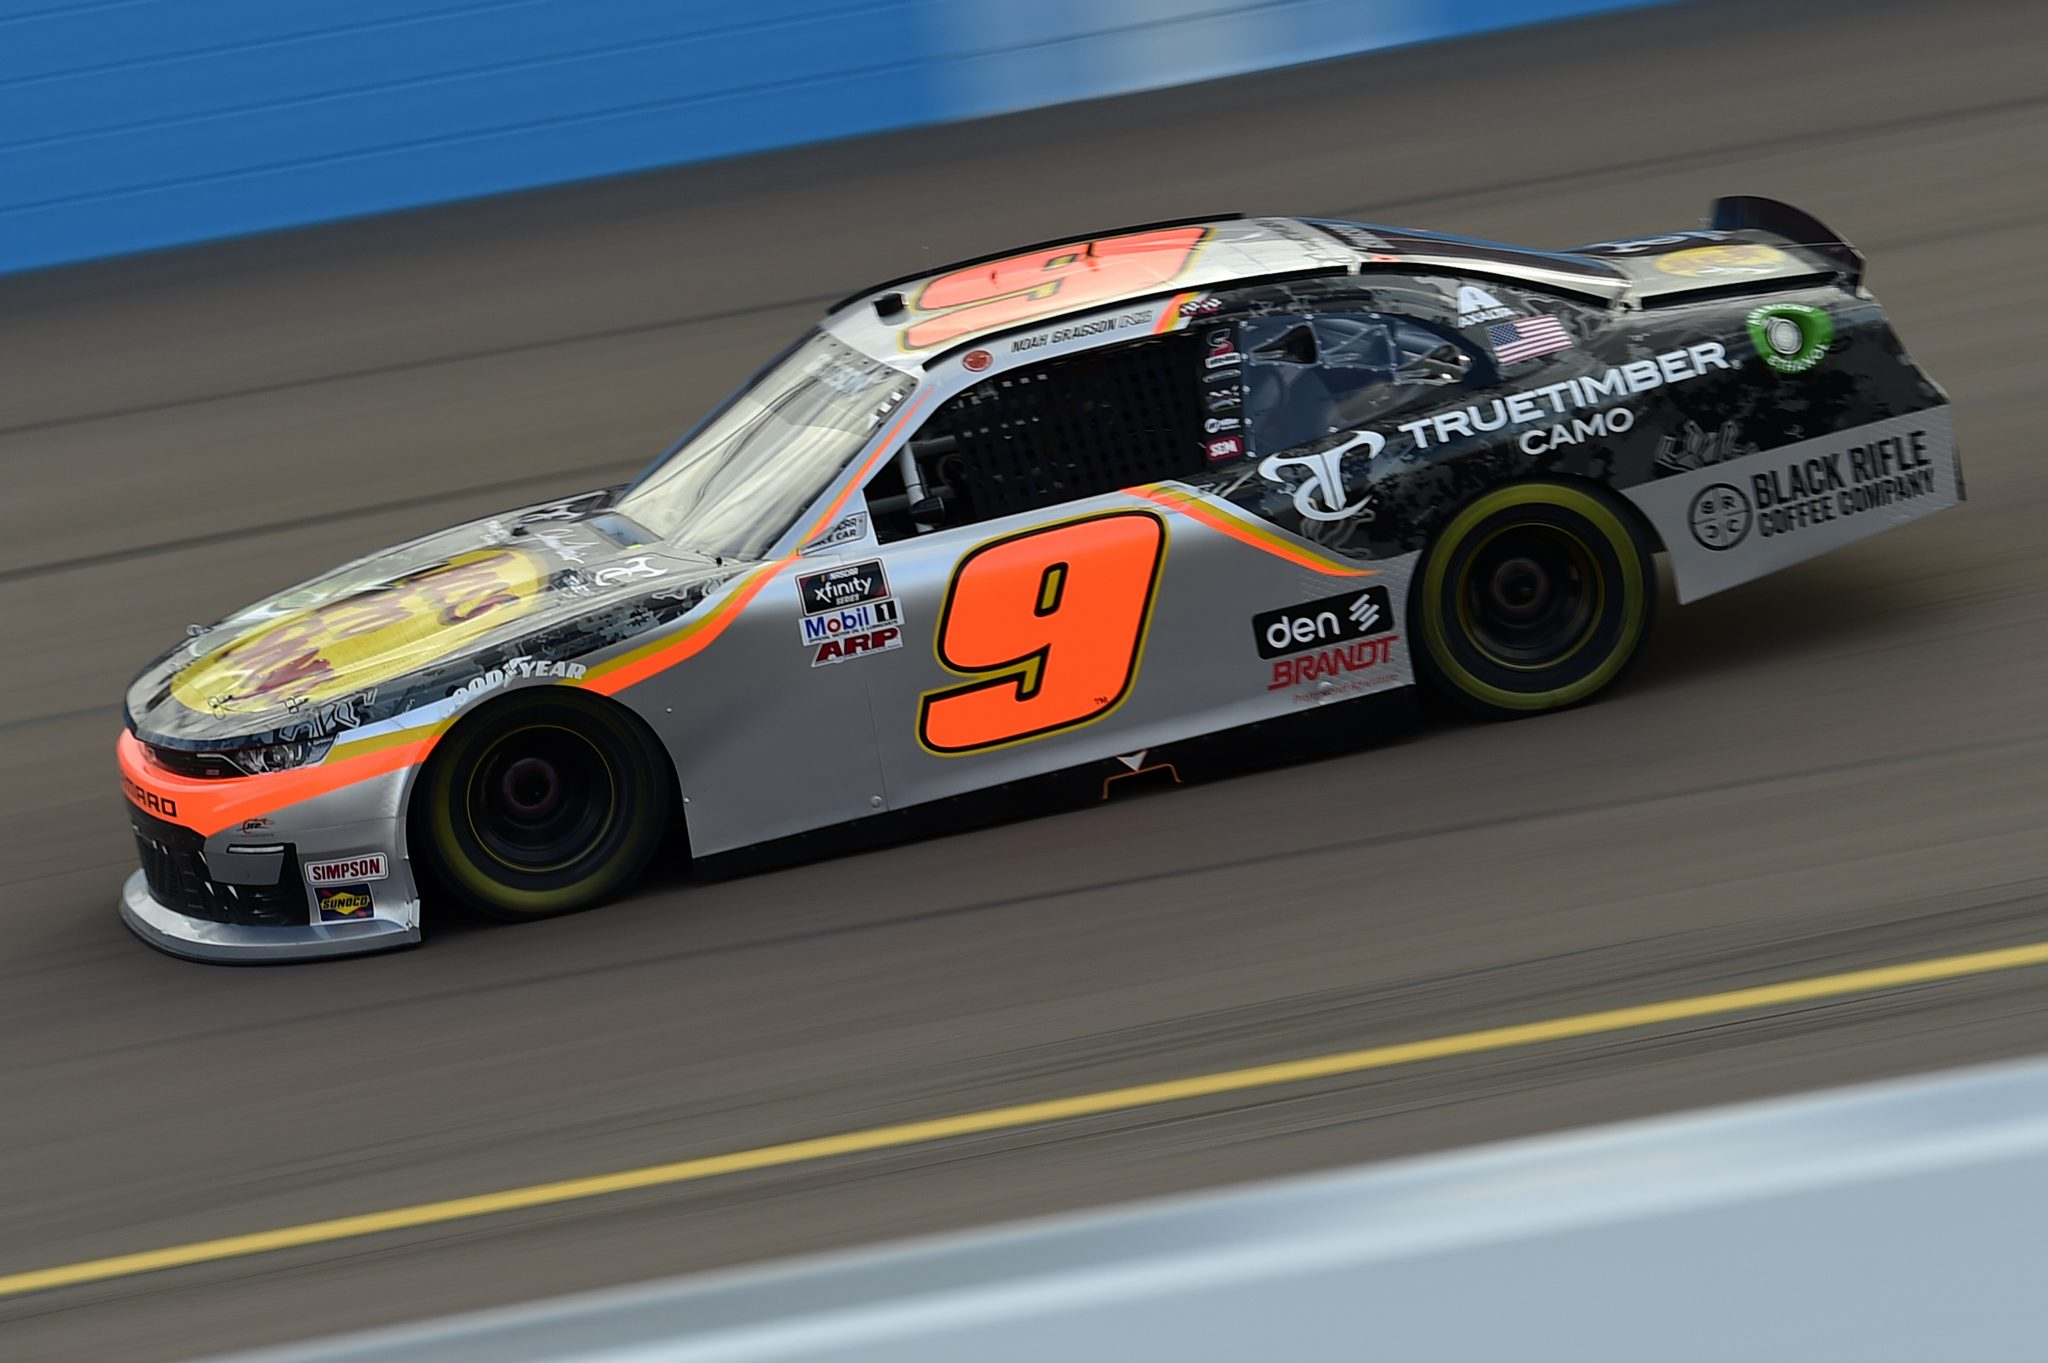 AVONDALE, ARIZONA - NOVEMBER 07: Noah Gragson, driver of the #9 Bass Pro Shops/TrueTimber Camo Chevrolet, drives during the NASCAR Xfinity Series Desert Diamond Casino West Valley 200 at Phoenix Raceway on November 07, 2020 in Avondale, Arizona. (Photo by Jared C. Tilton/Getty Images) | Getty Images